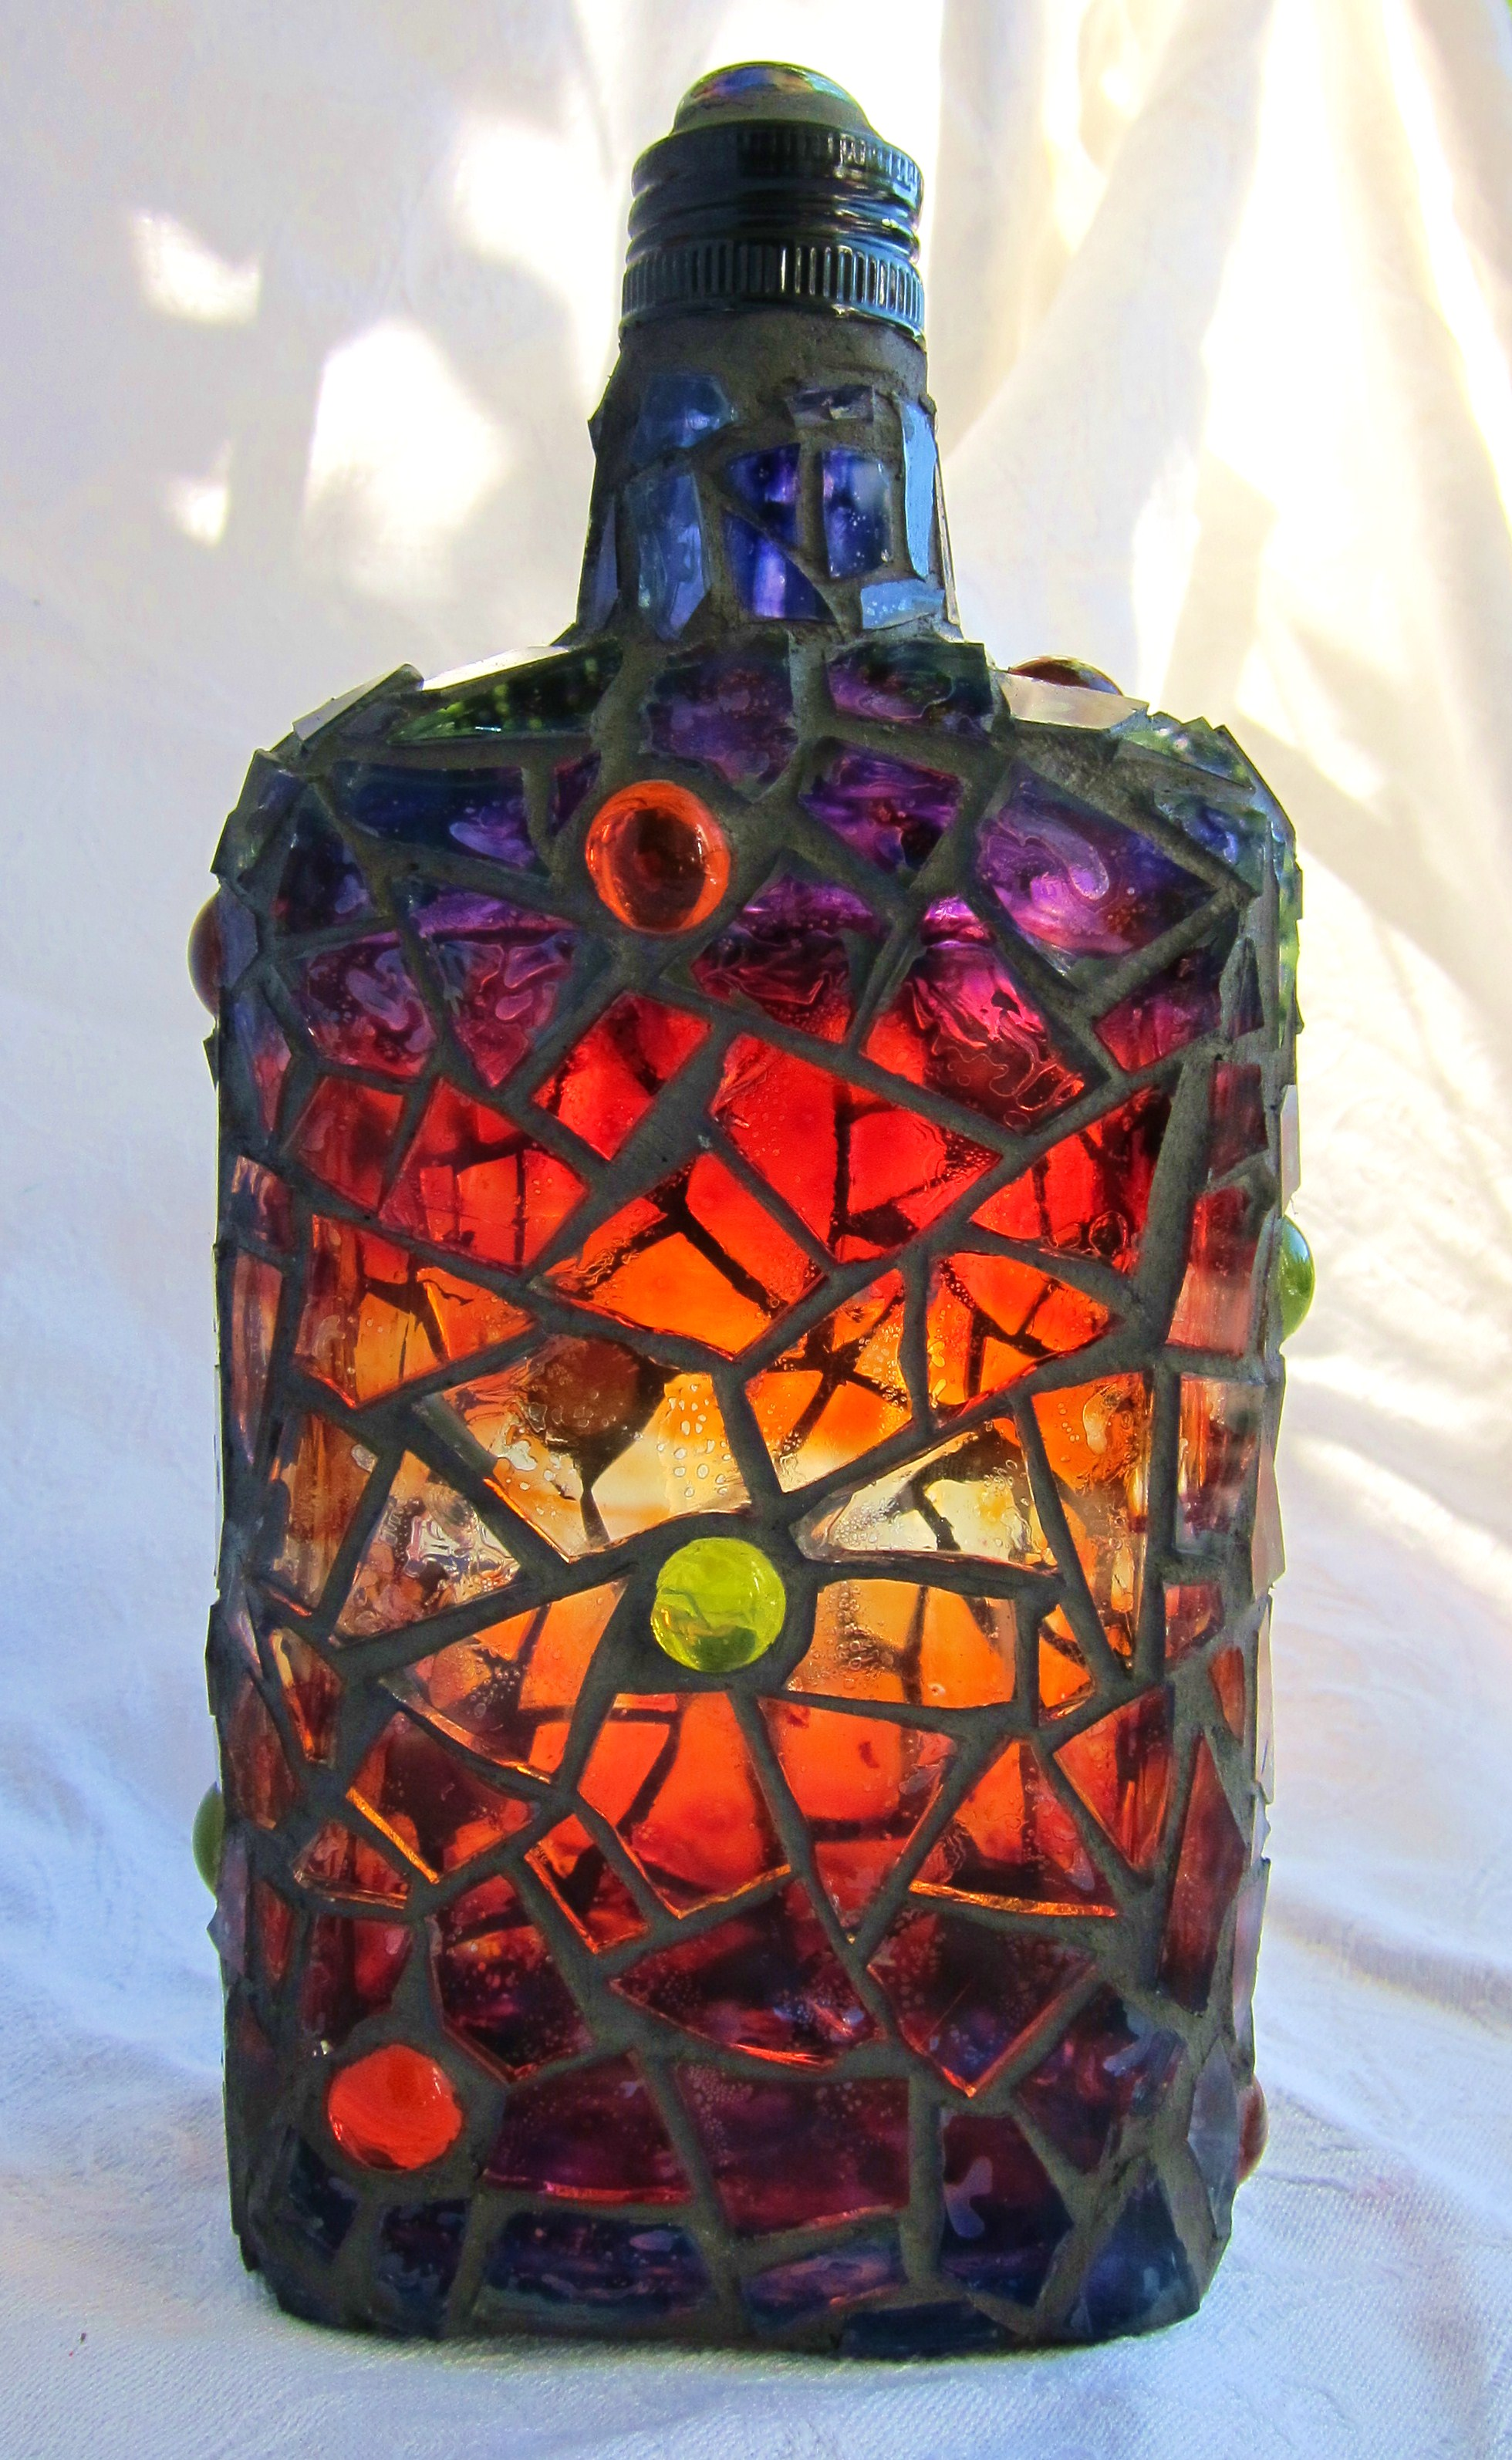 Painted mosaic bottle flickr photo sharing for How to stain glass jars with paint